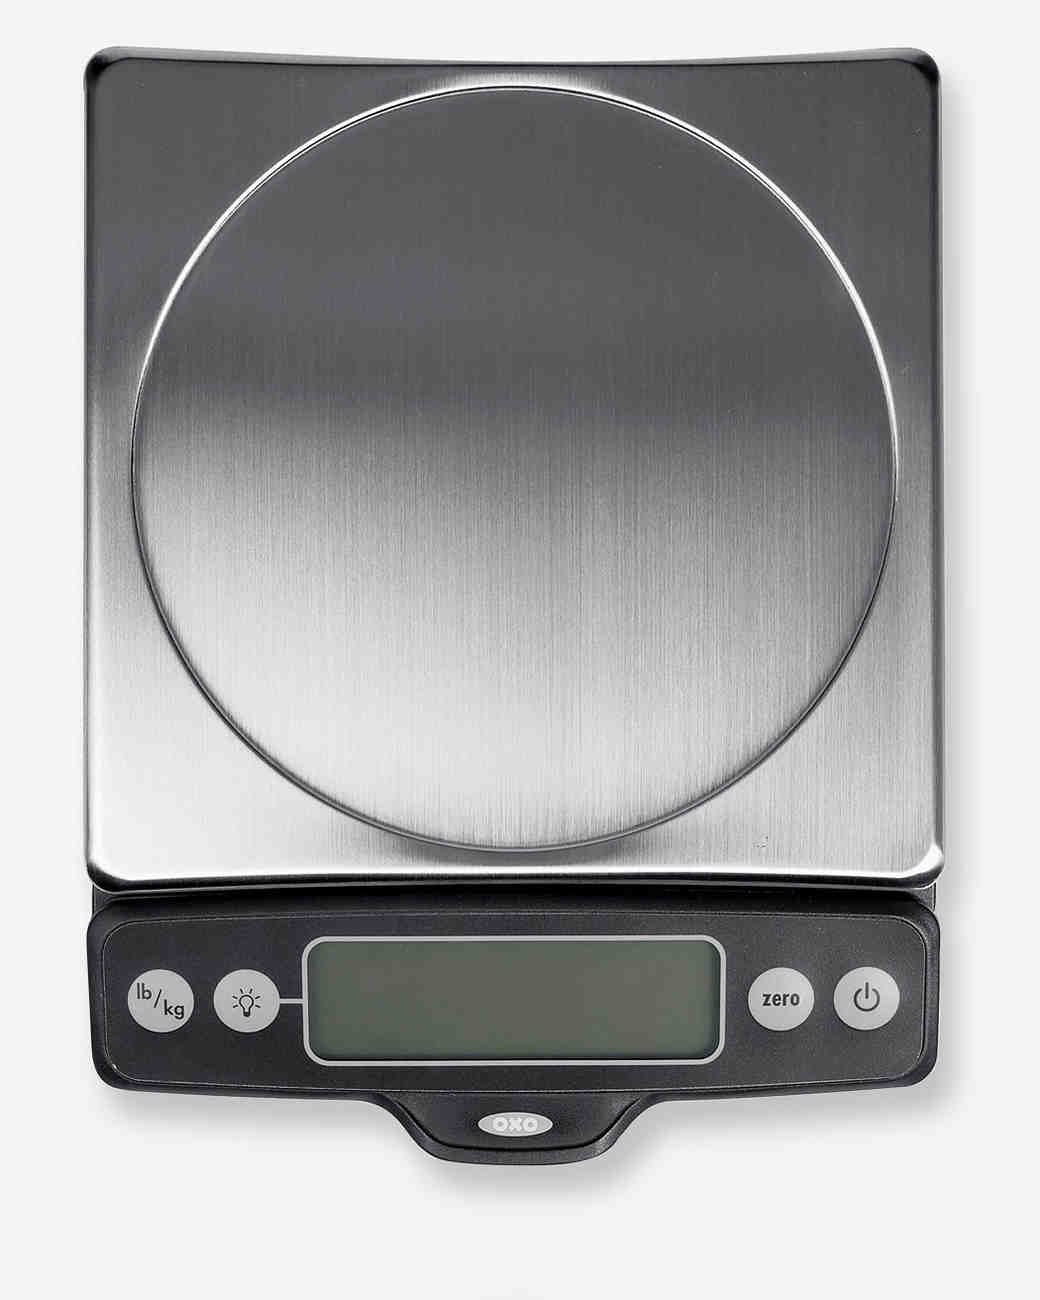 oxo digital food scale